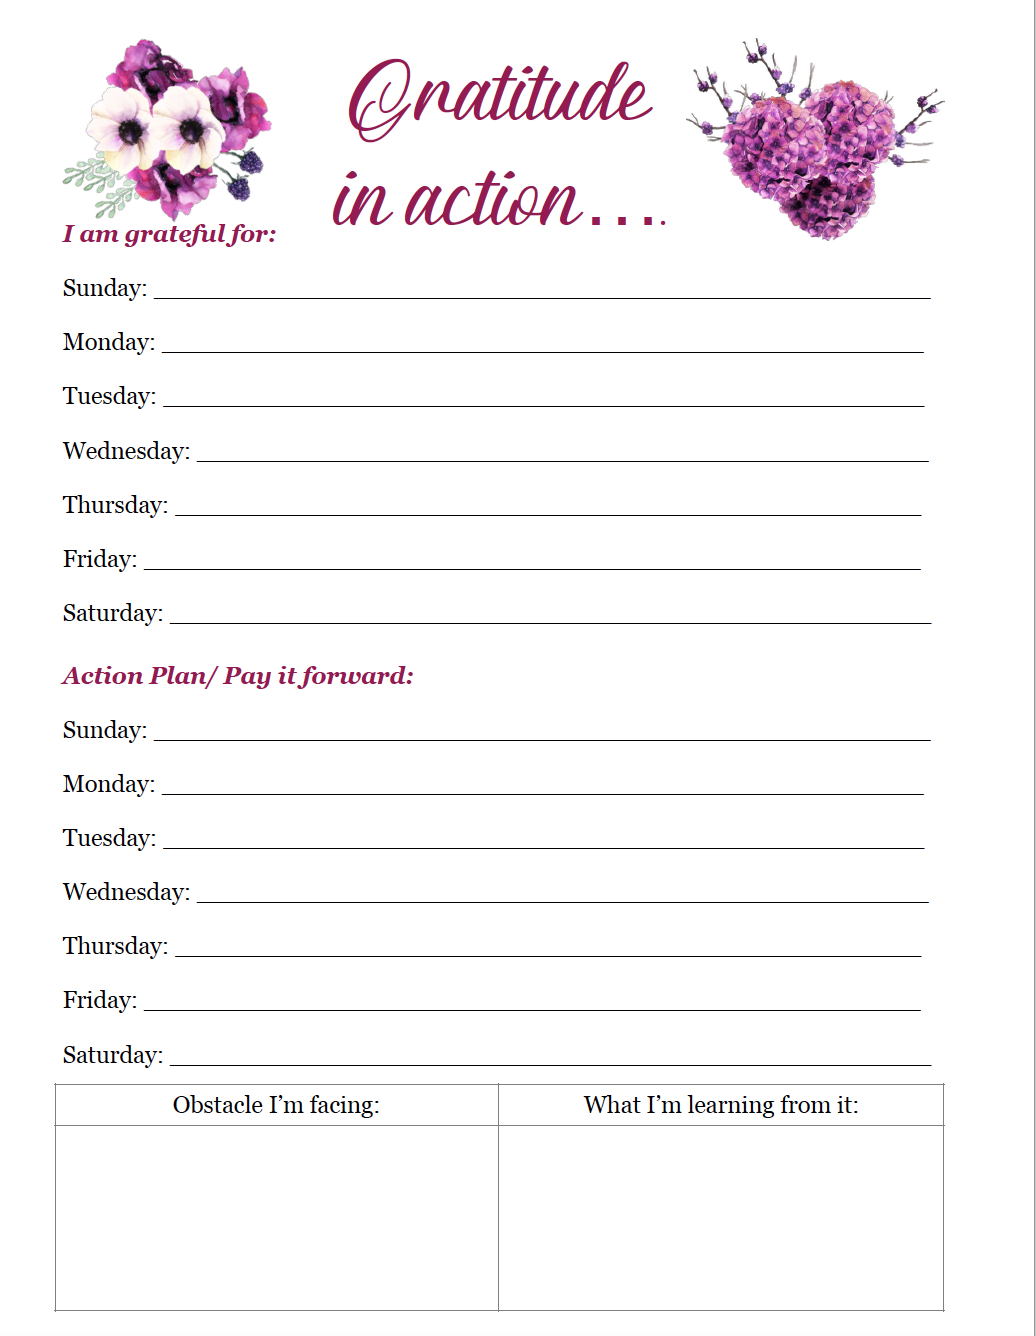 How To Practice Gratitude And Free Printable Gratitude Journal - Free Printable Gratitude Journal